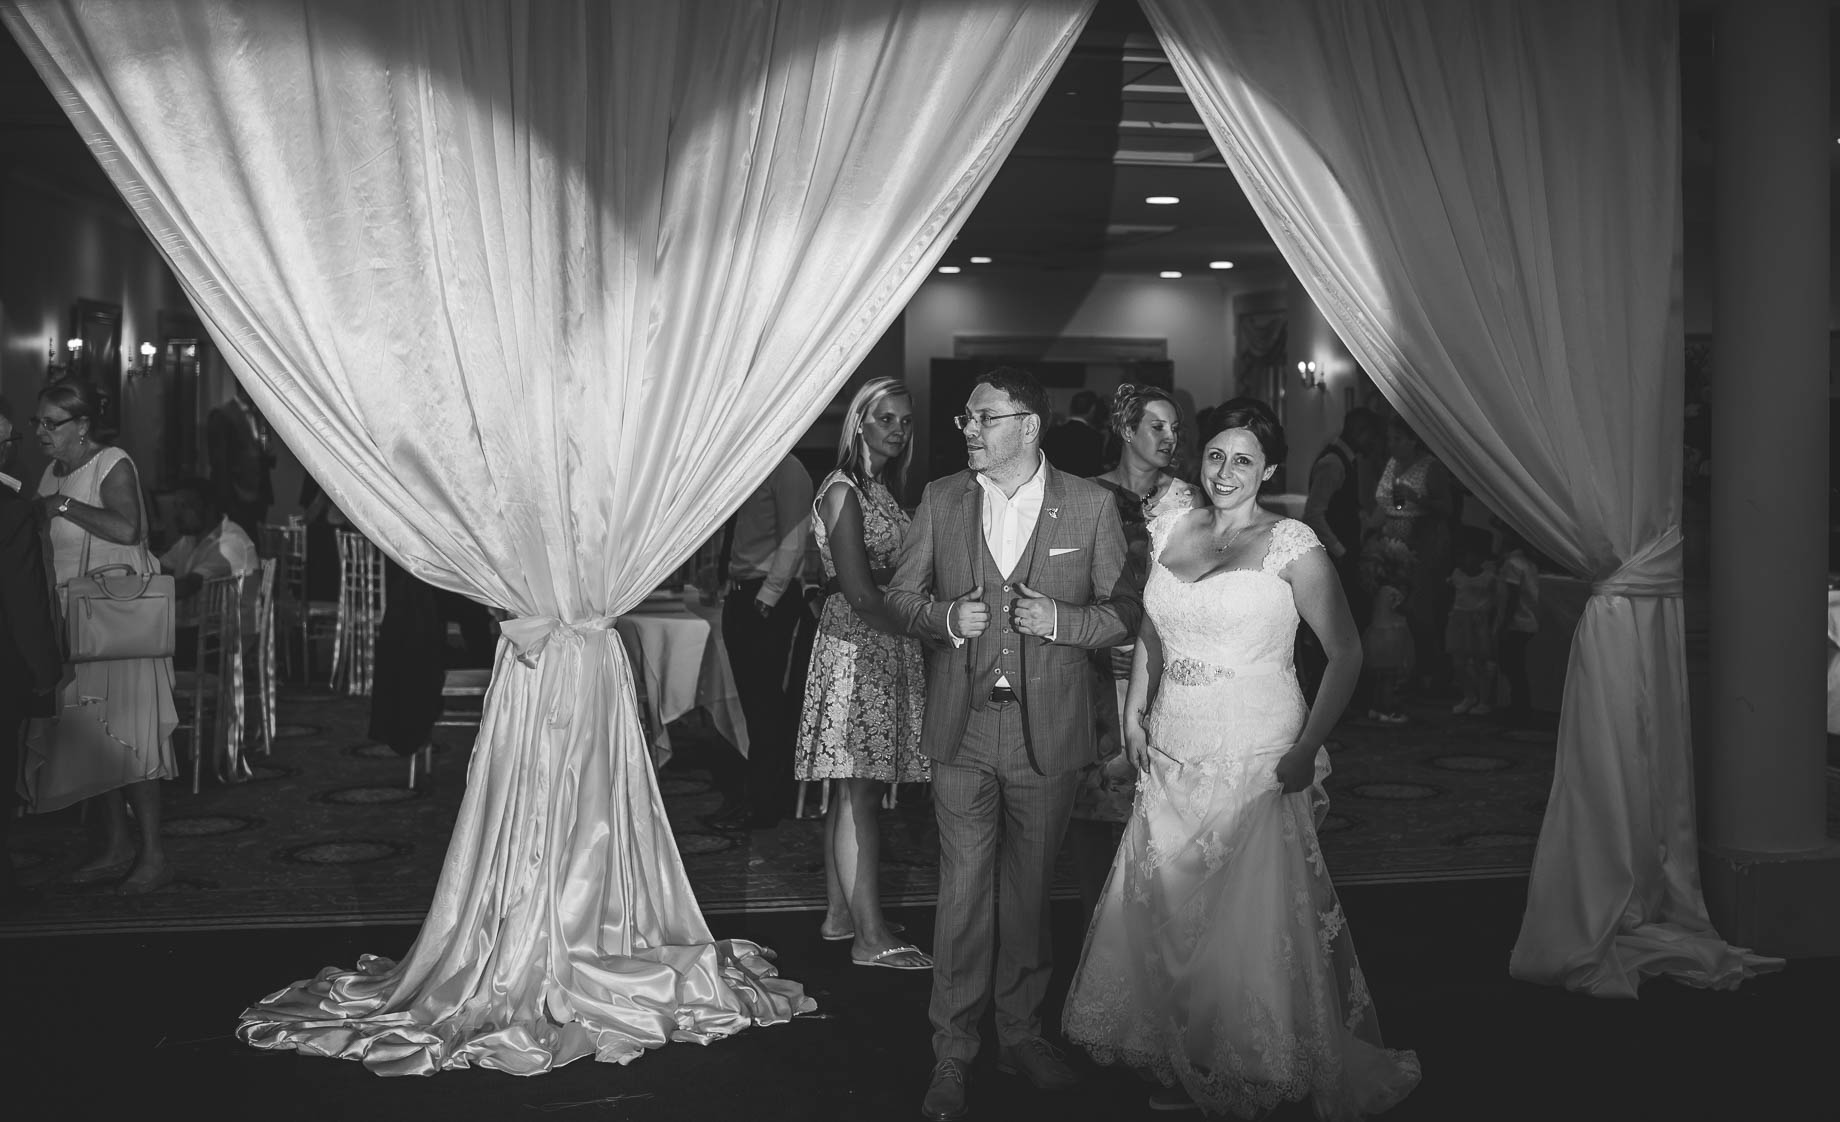 Luton Hoo wedding photography by Guy Collier Photography - Lauren and Gem (168 of 178)